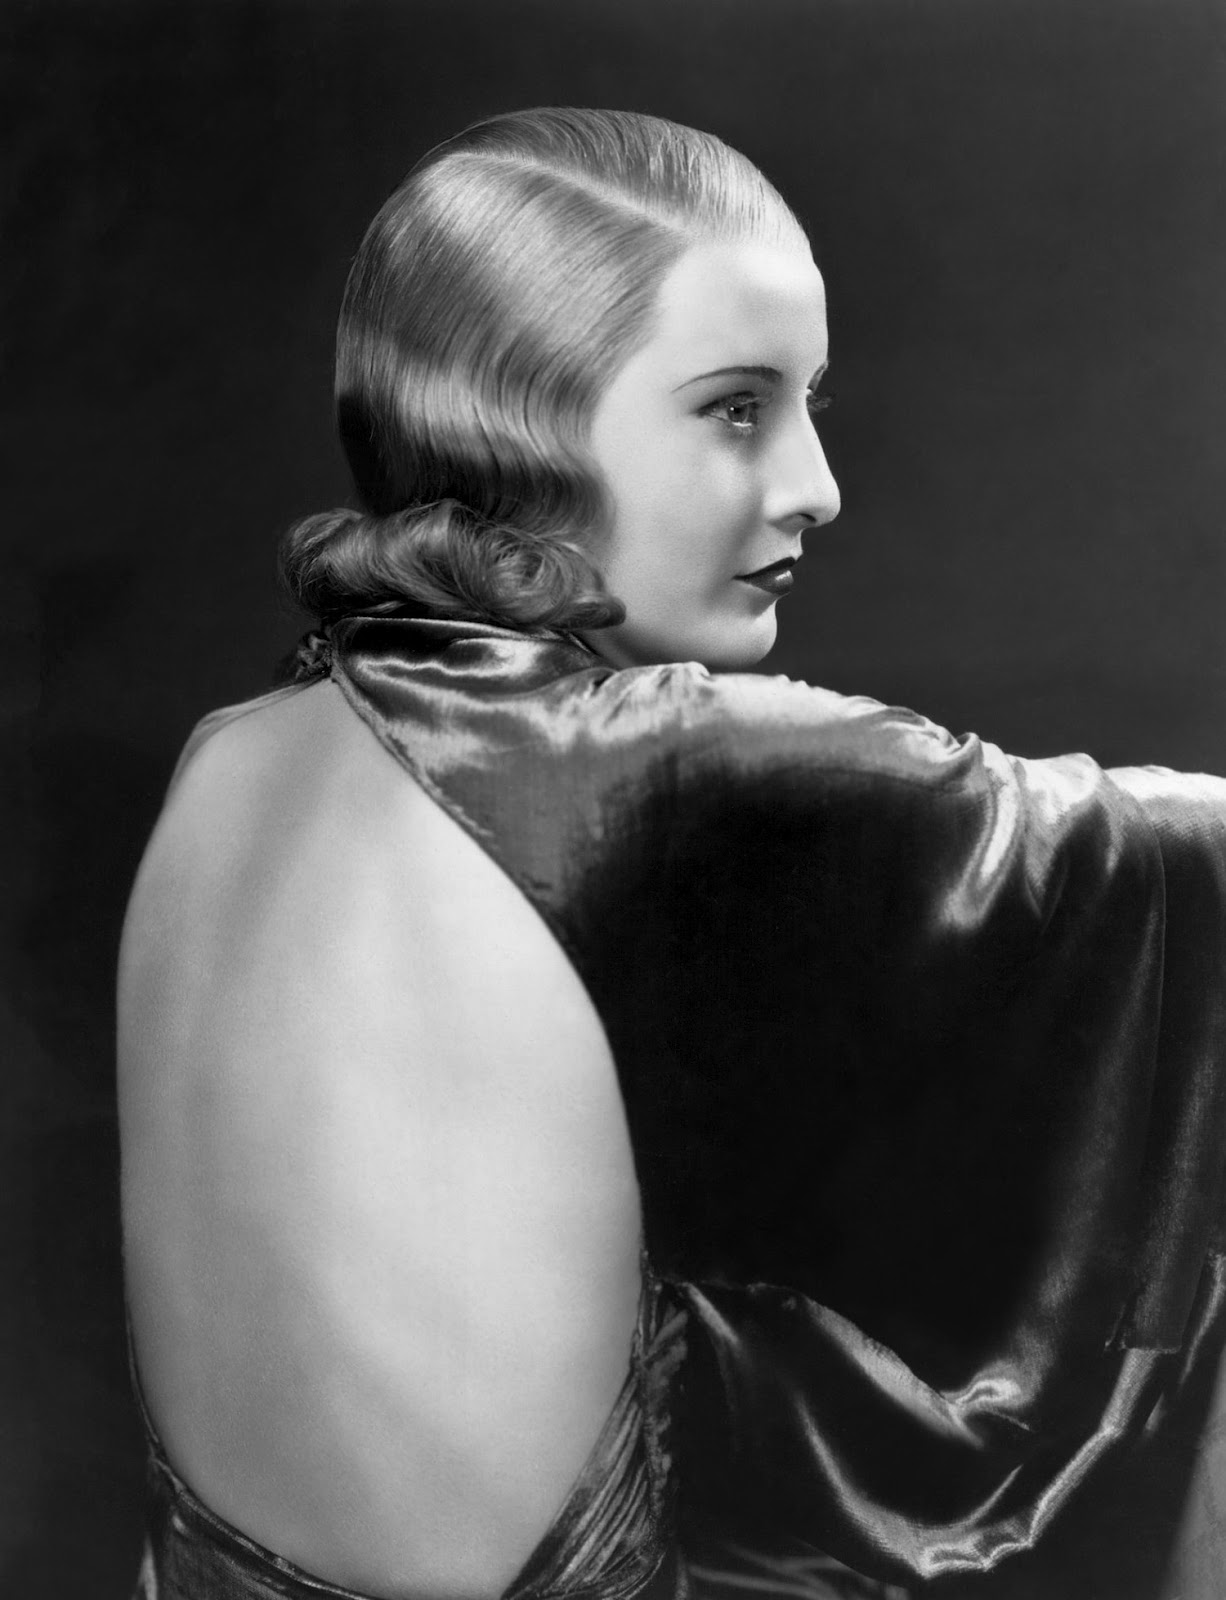 The dangerous, blonde Stanwyck, as she appeared in her